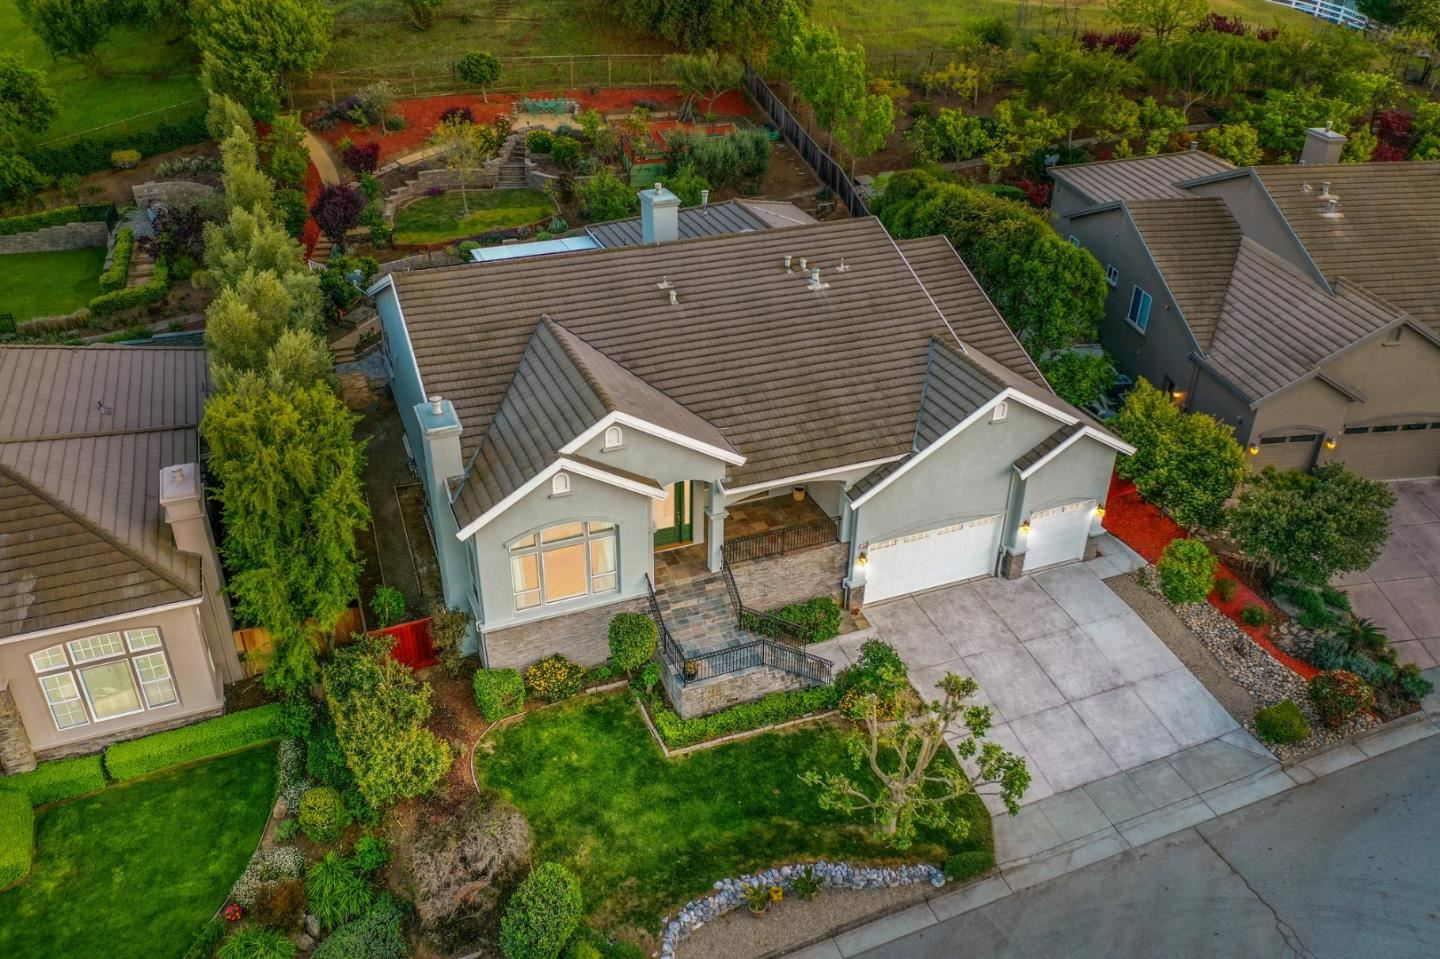 Photo for 16630 Dale Hollow Court, MORGAN HILL, CA 95037 (MLS # ML81840307)